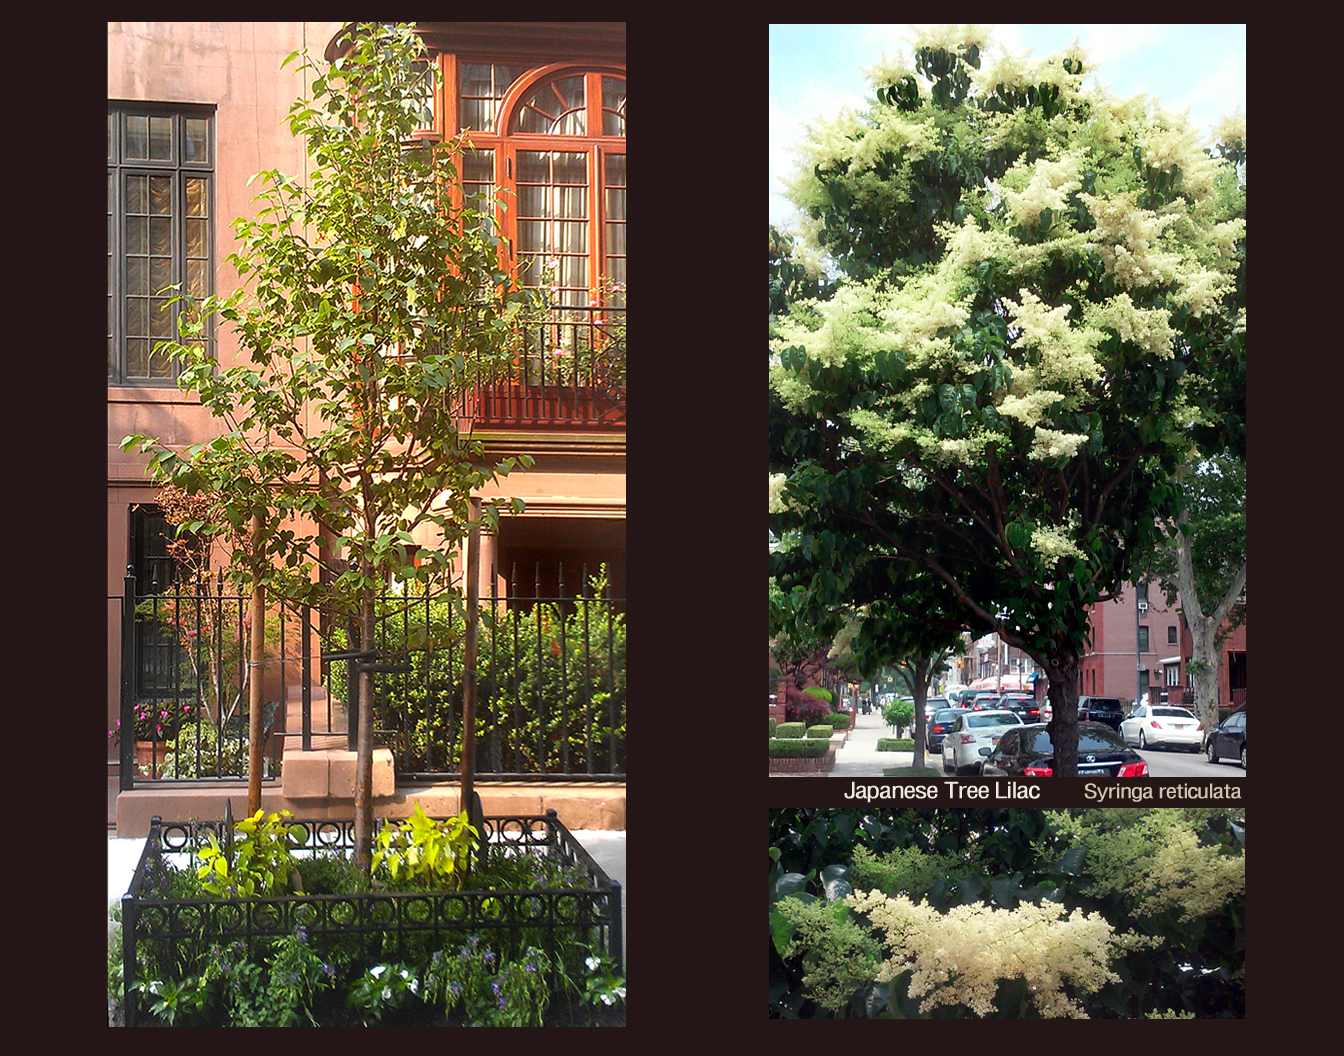 NYC Street Tree Japanese Tree Lilac